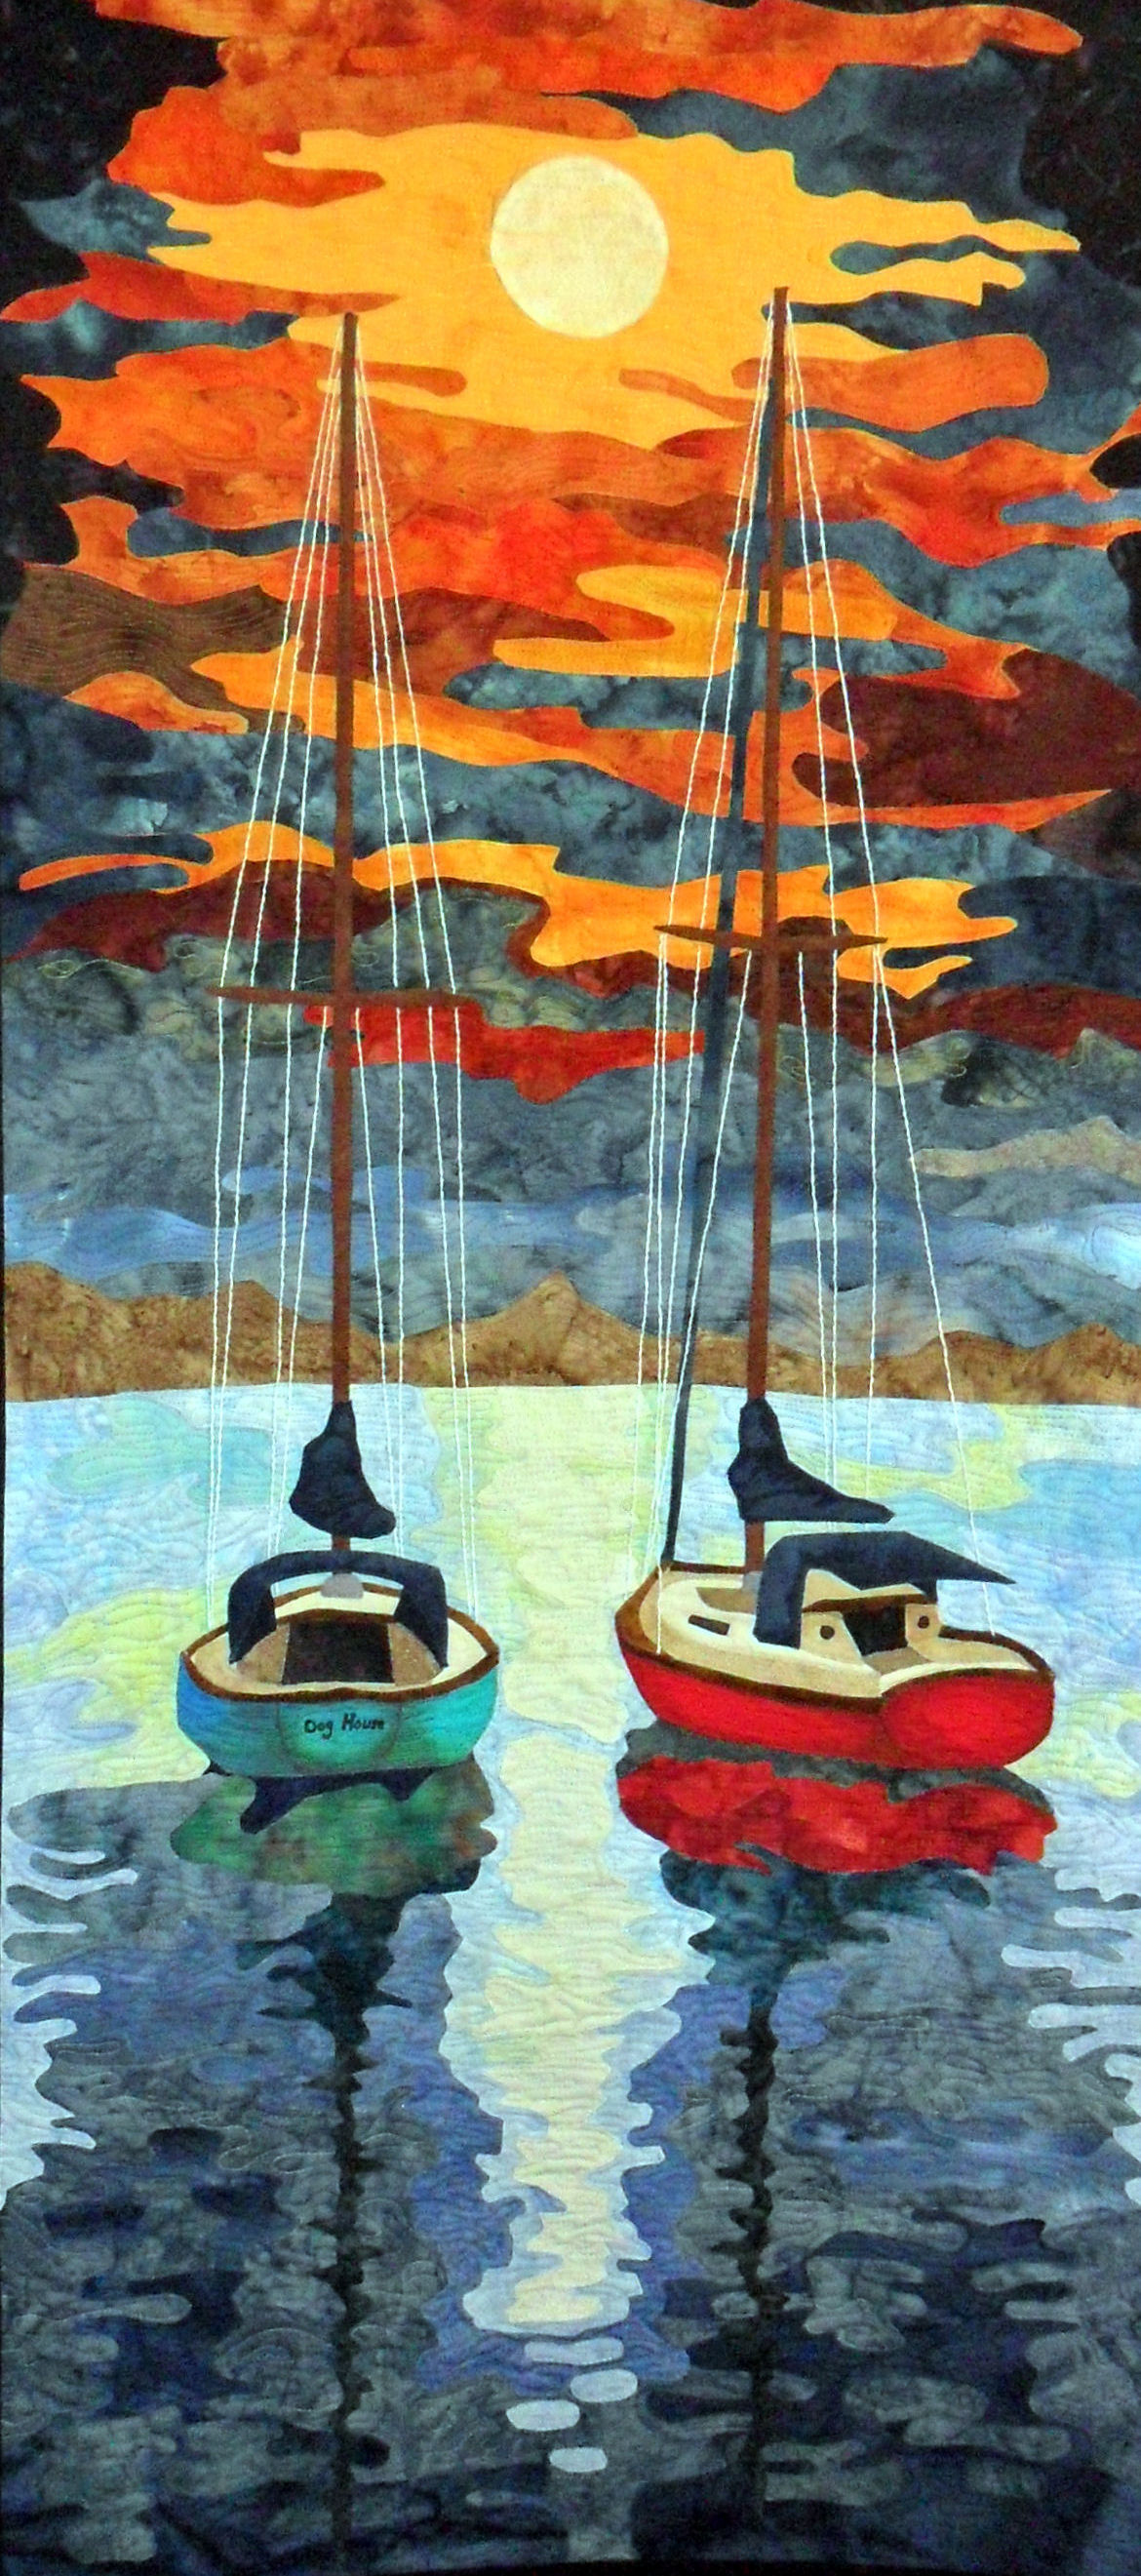 Kemah After Hours is a Fiber Art work representing two boats floatin side by side at night in Kemah,Texas with the moon reflecting on the water and the breeze gently rockin the boats and singing in the rigging